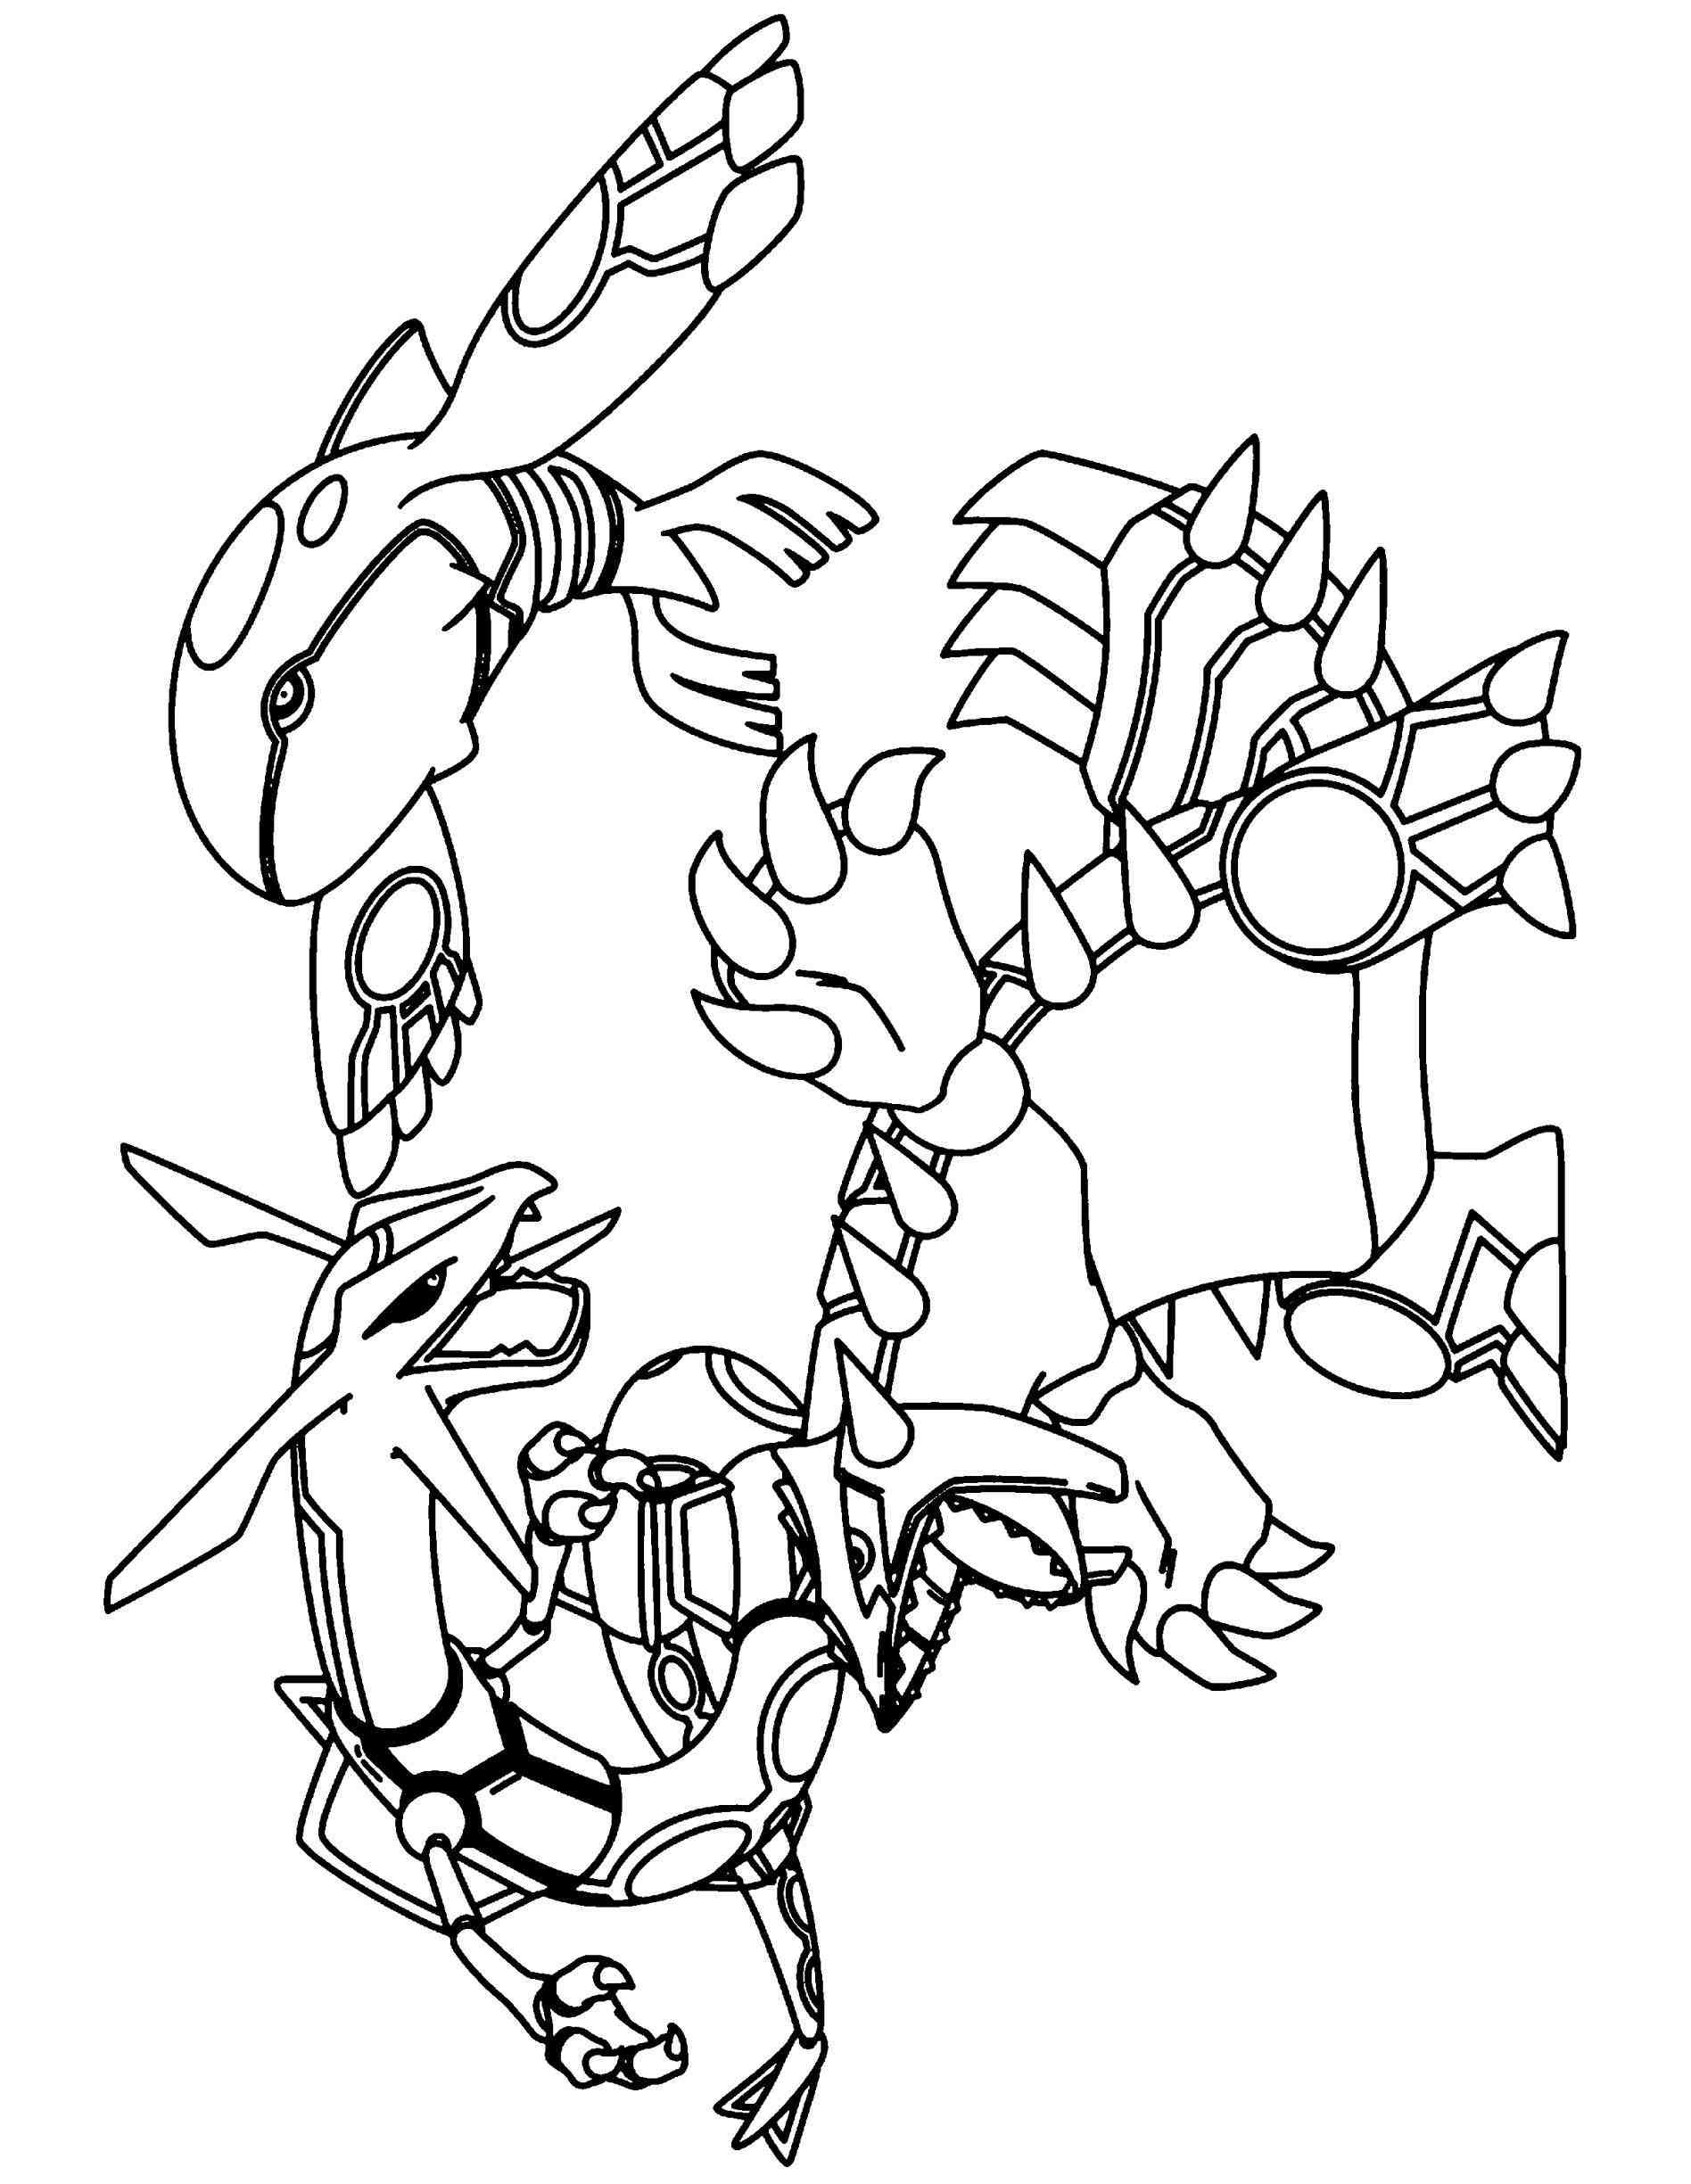 5500 Top Anime Pokemon Coloring Pages For Adults Download Free Images